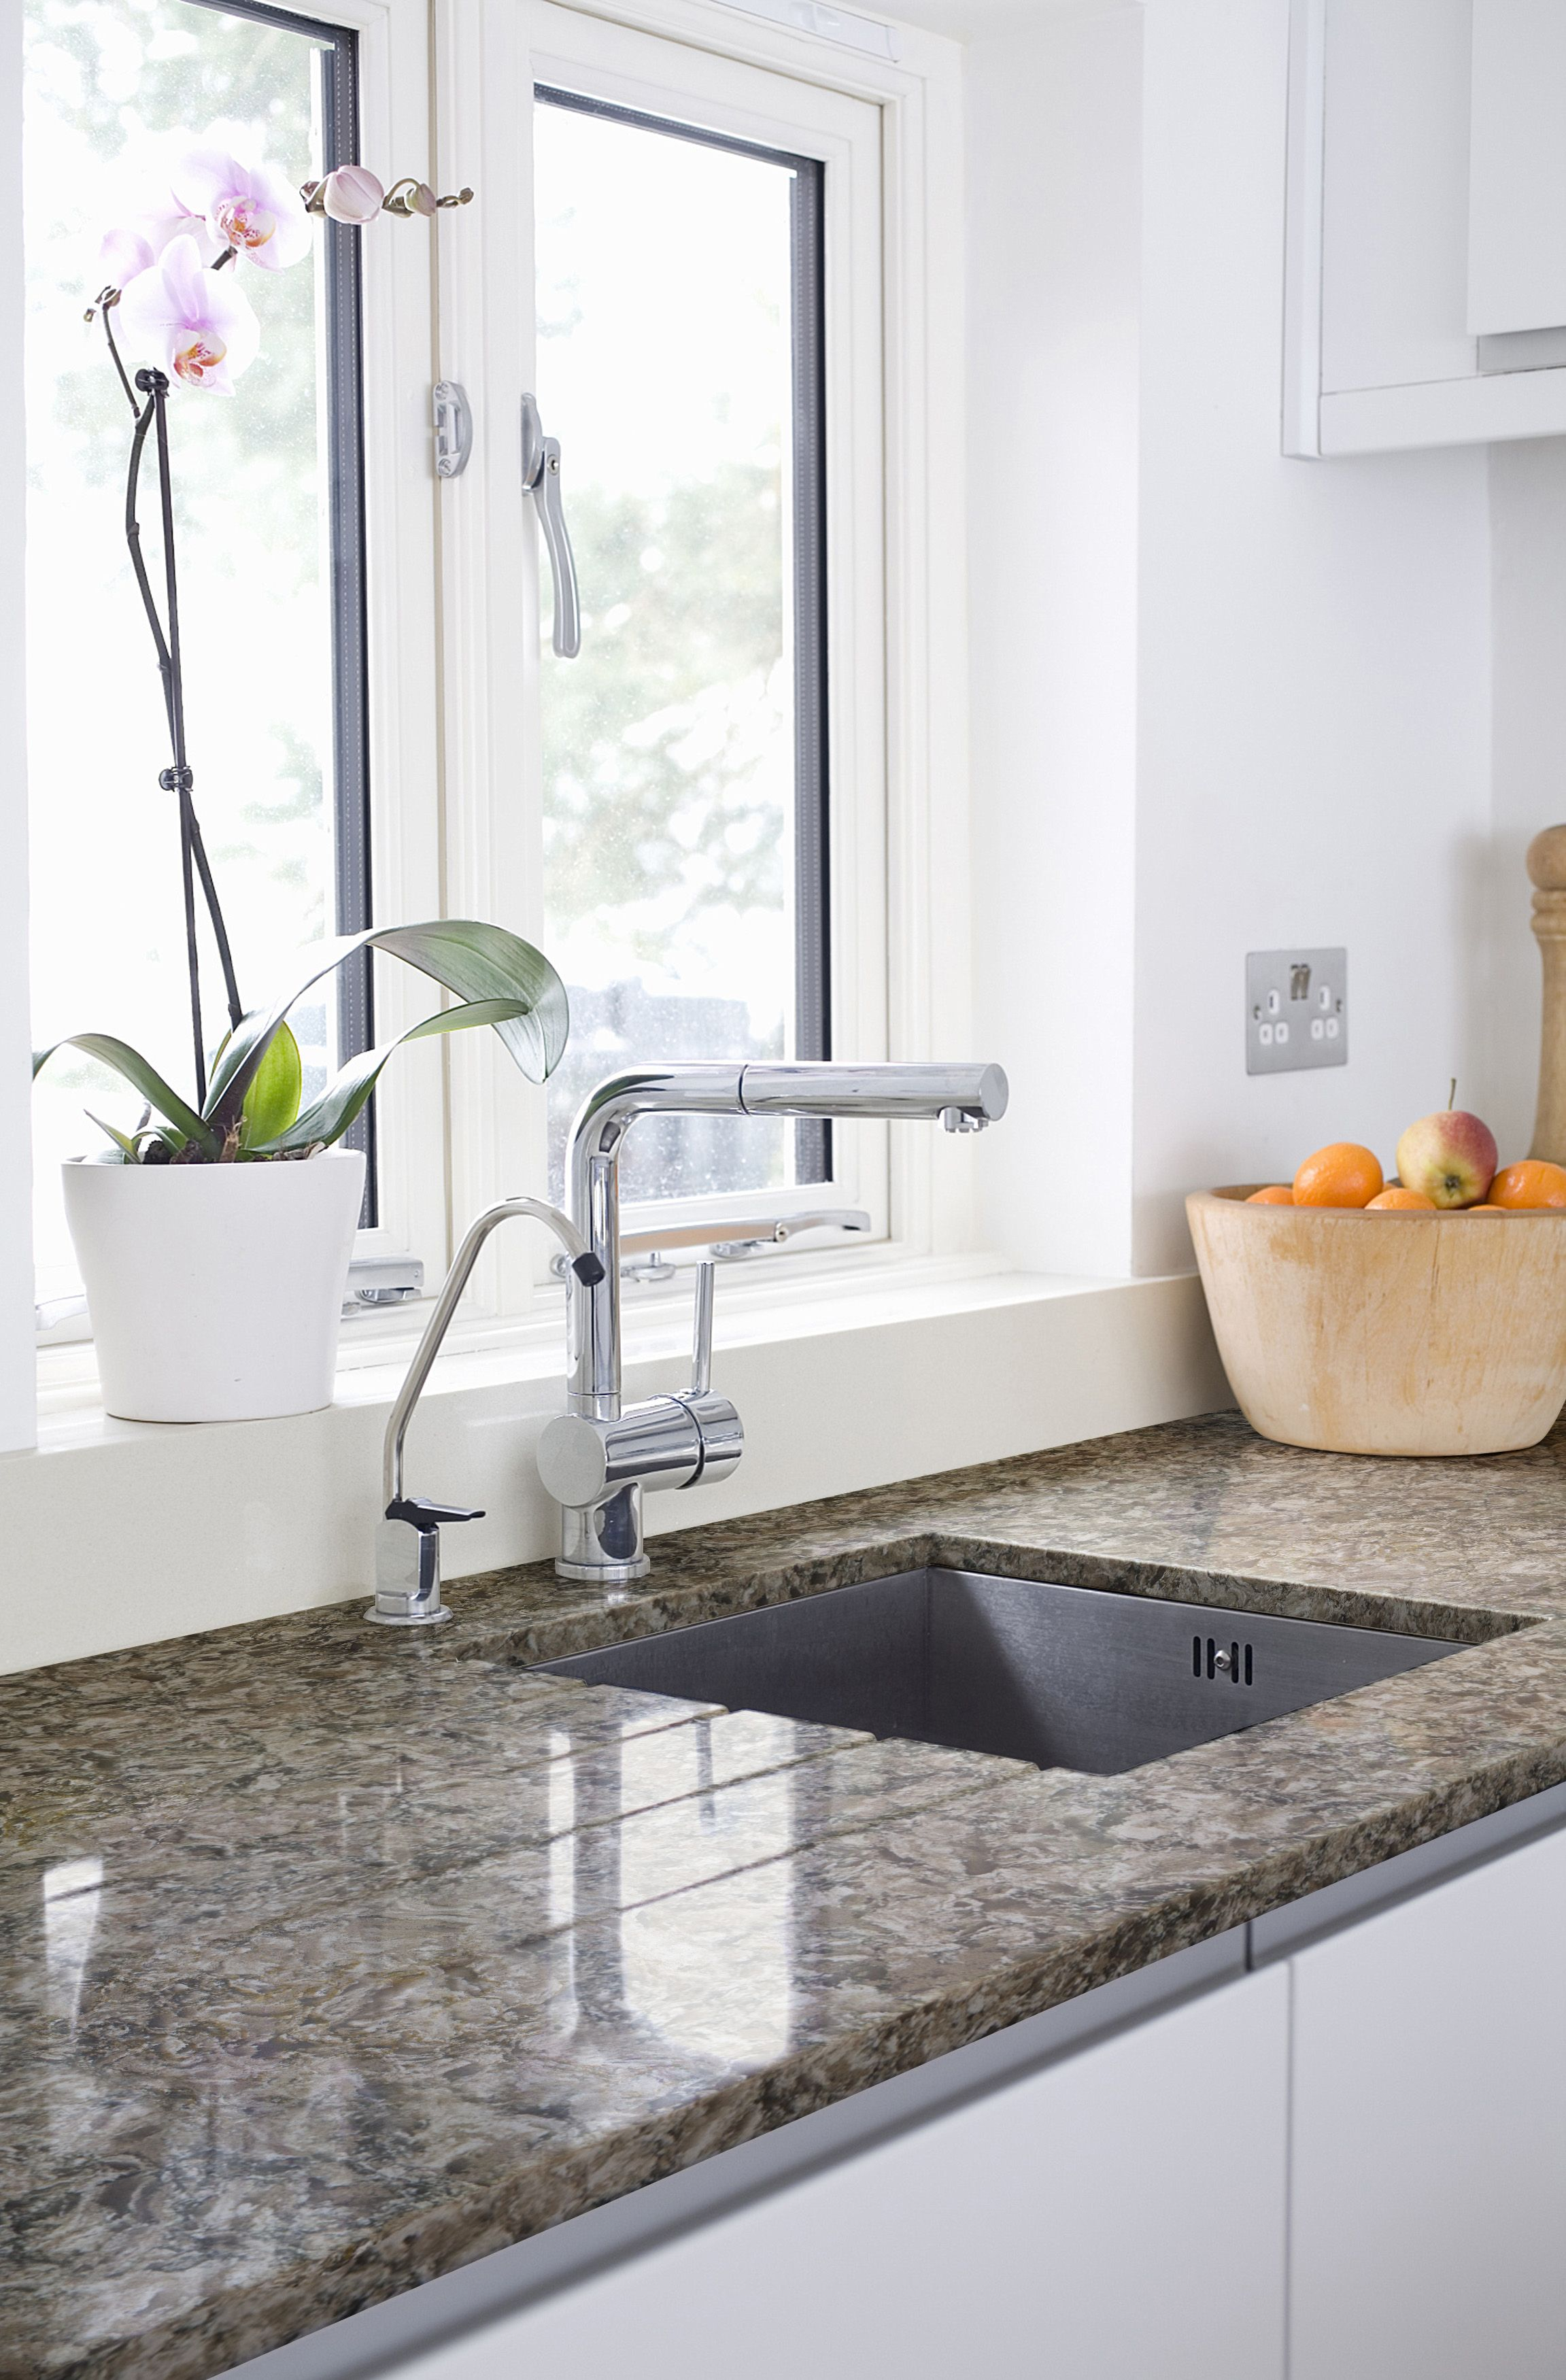 Amazing Types Of Kitchen Countertops   Granite, Corian, Laminate, Marble   Pros And  Cons